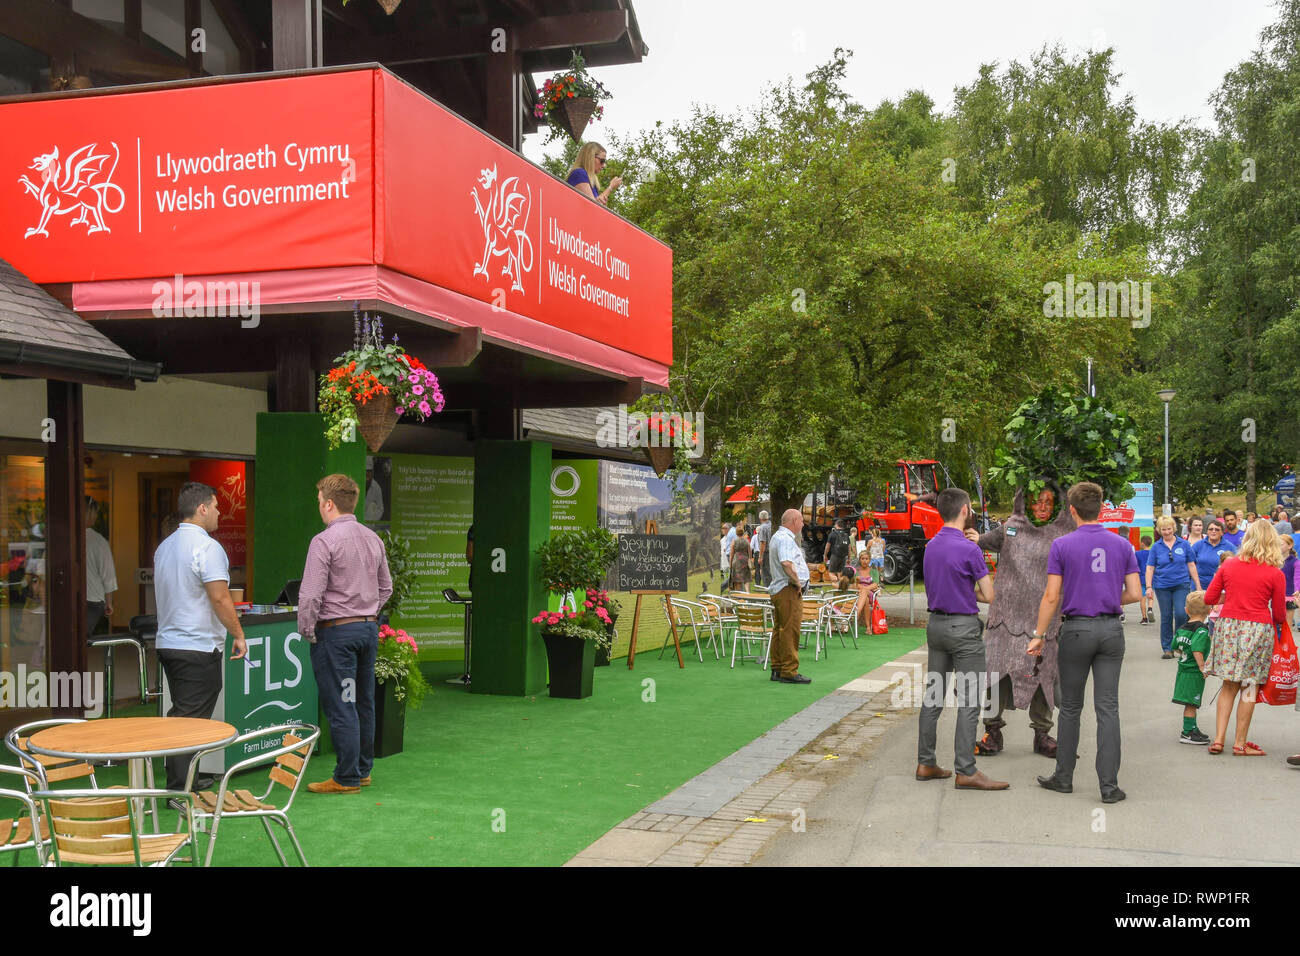 BUILTH WELLS, WALES - JULY 2018: Entrance to the Welsh Government's pavilion on the showground at Builth Wells. - Stock Image